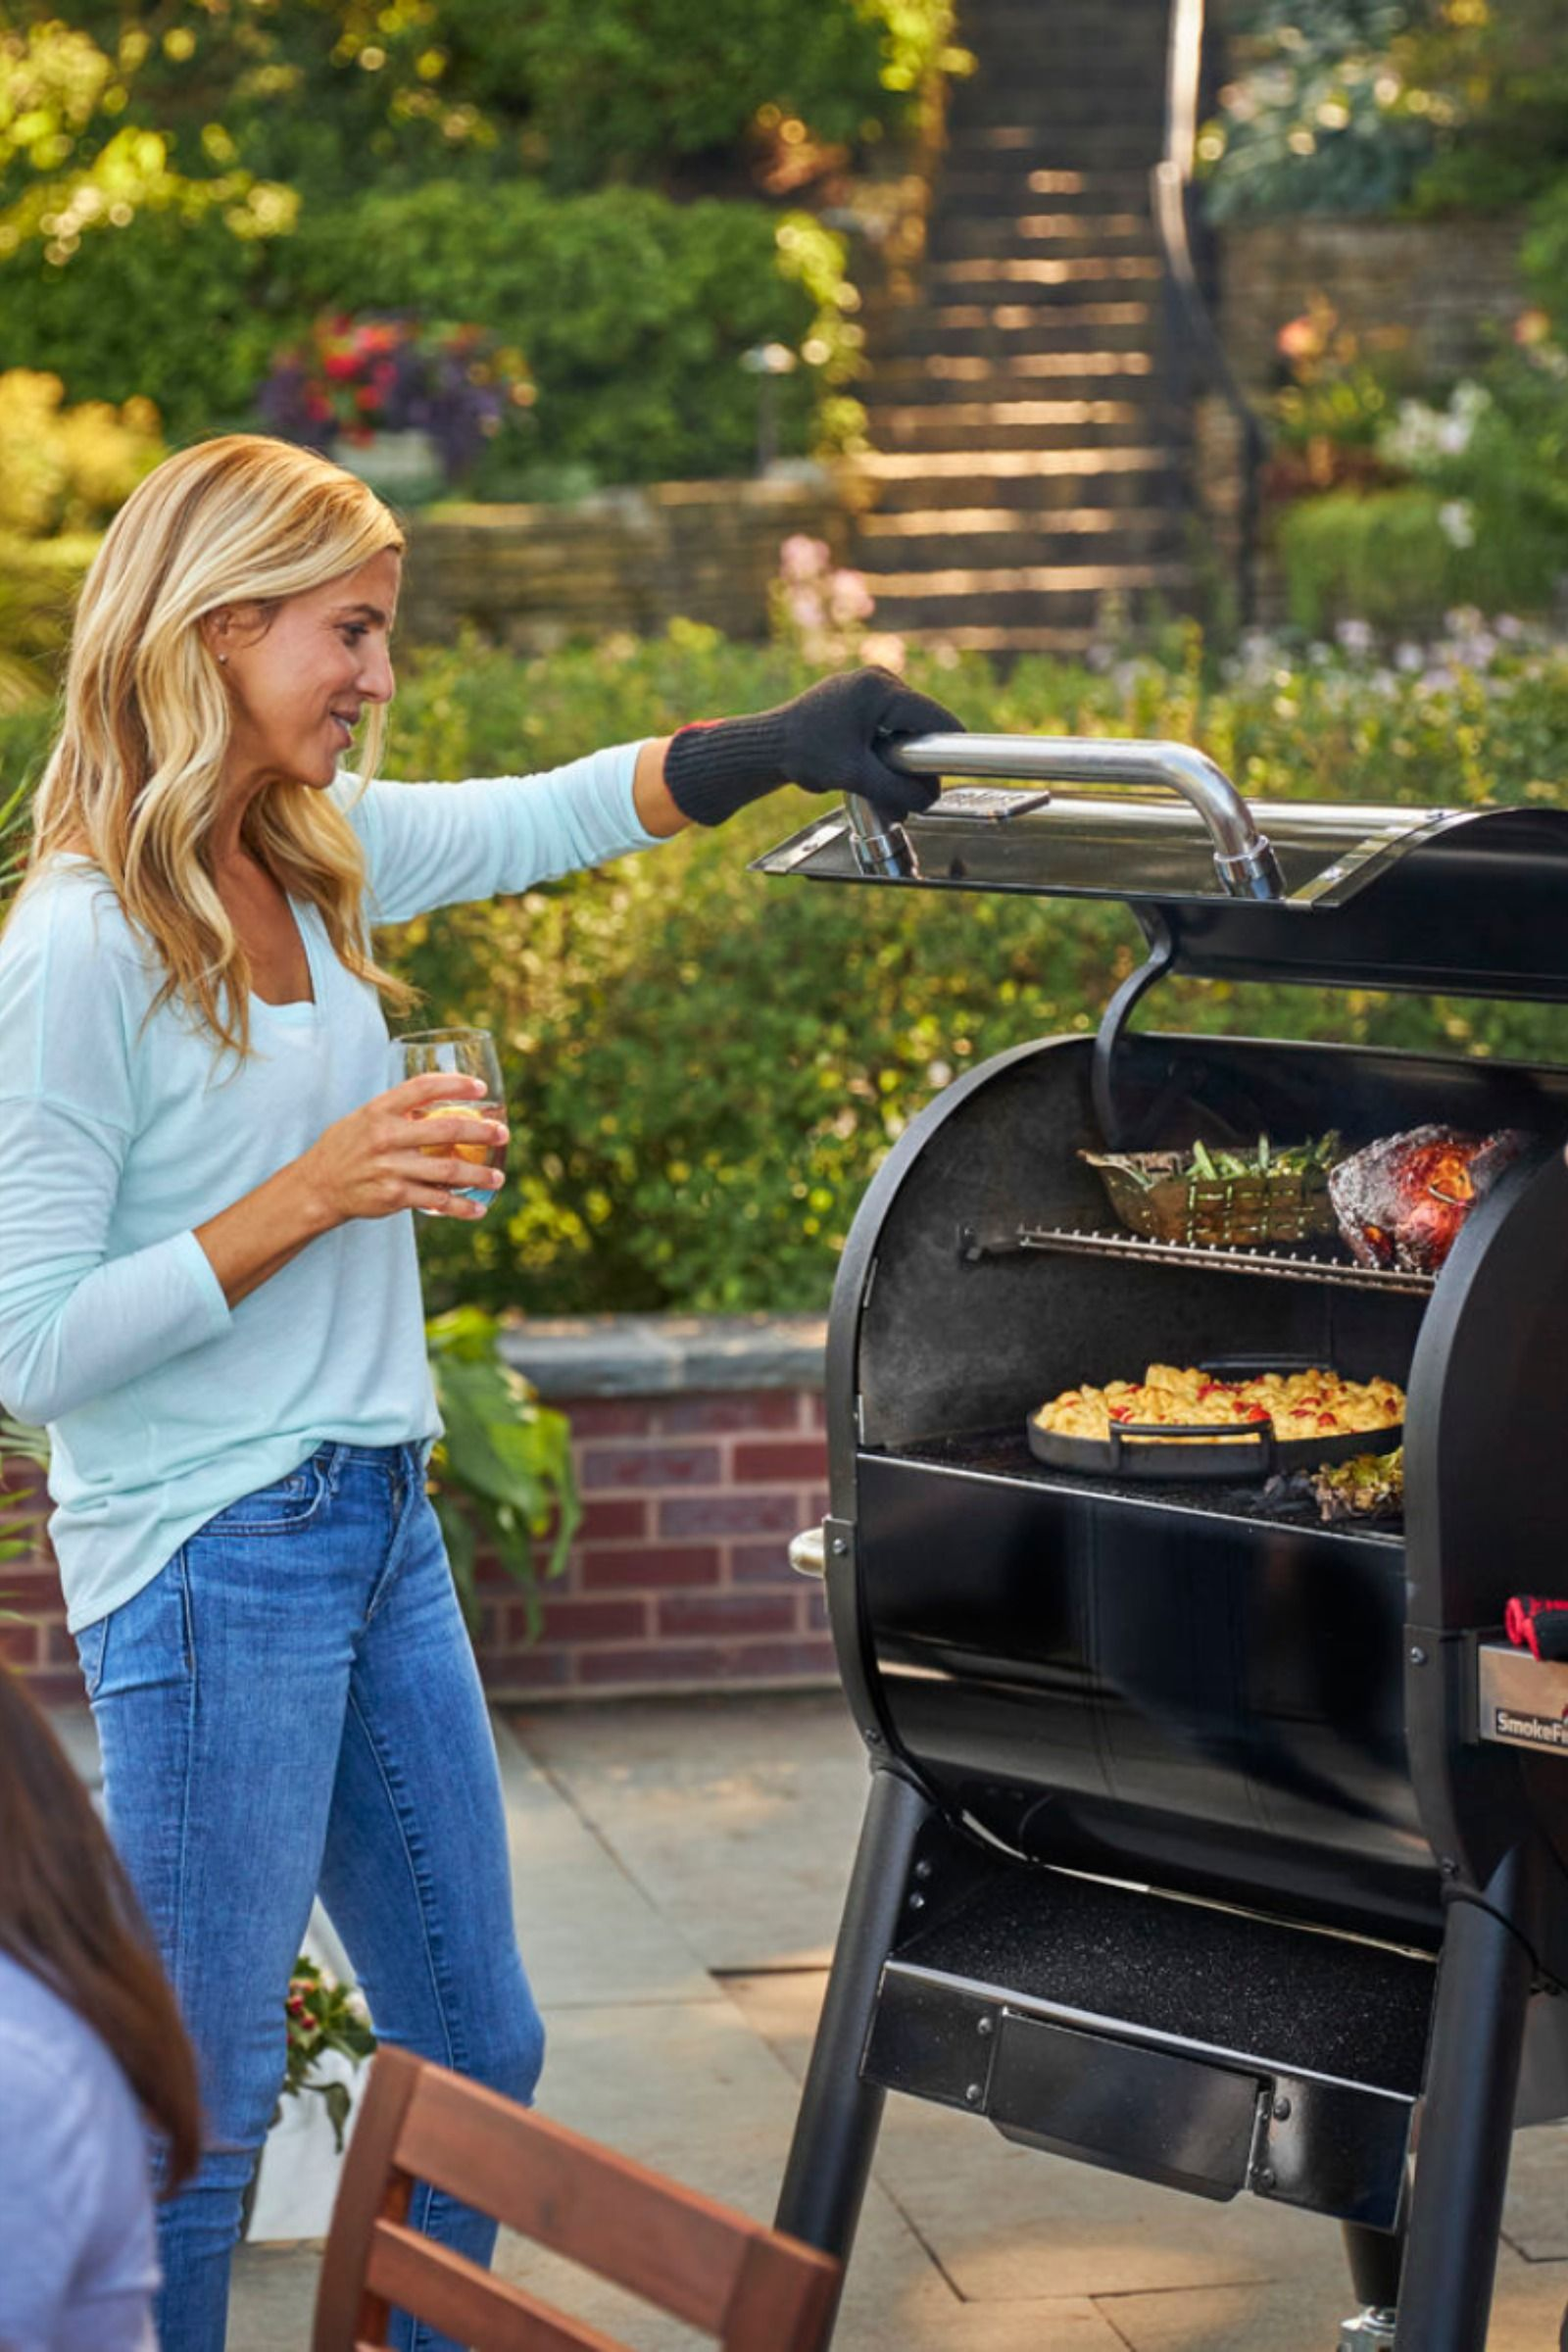 Weber Smokefire Pellet Grill In 2020 Grilling Wood Pellet Grills Pellet Grill